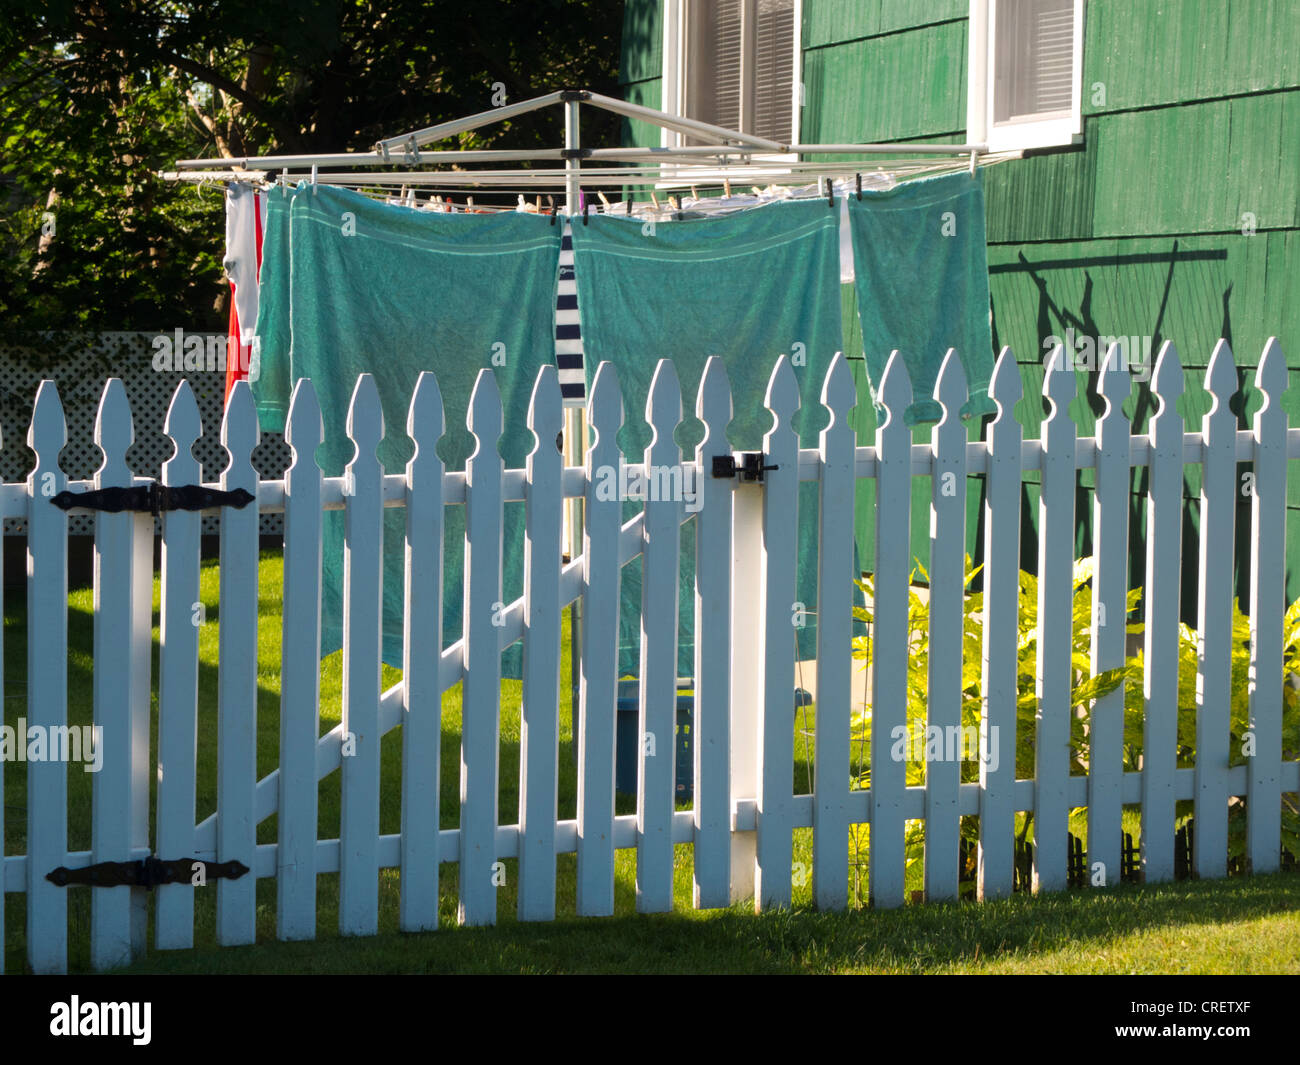 laundry hanging on a old fashioned clothes line Stock Photo - Alamy